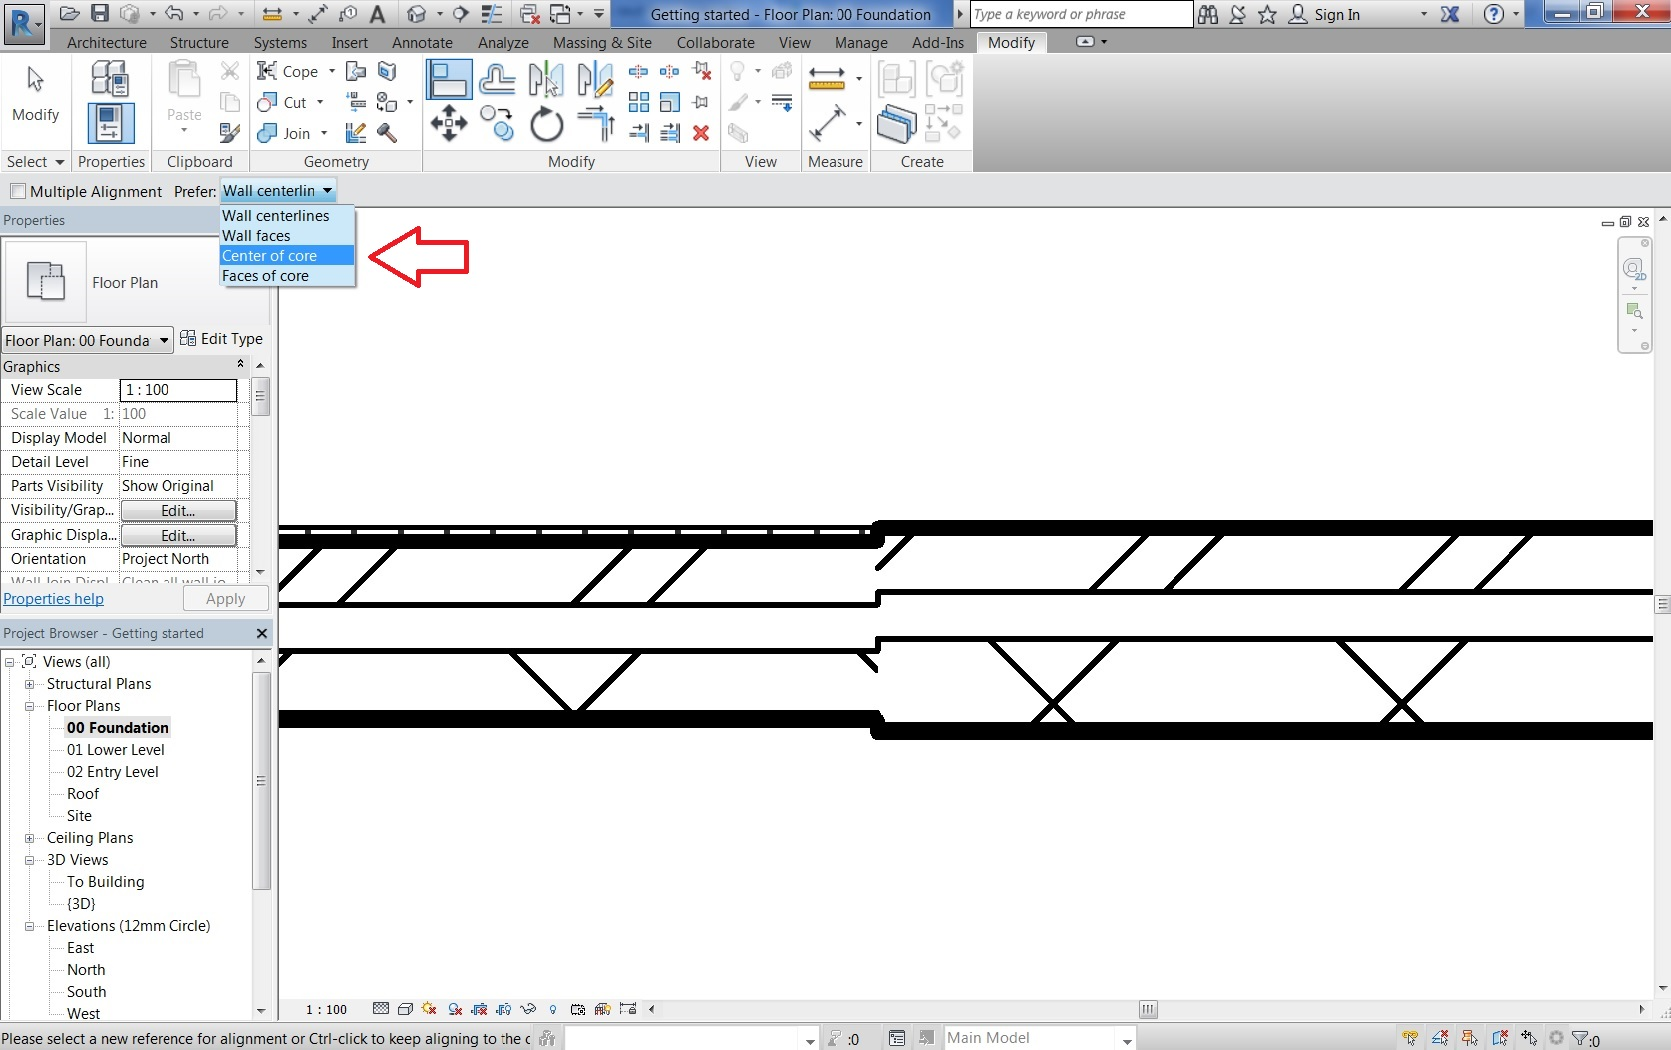 Can`t lock wall core to anything - Revit 2017 LT - Autodesk